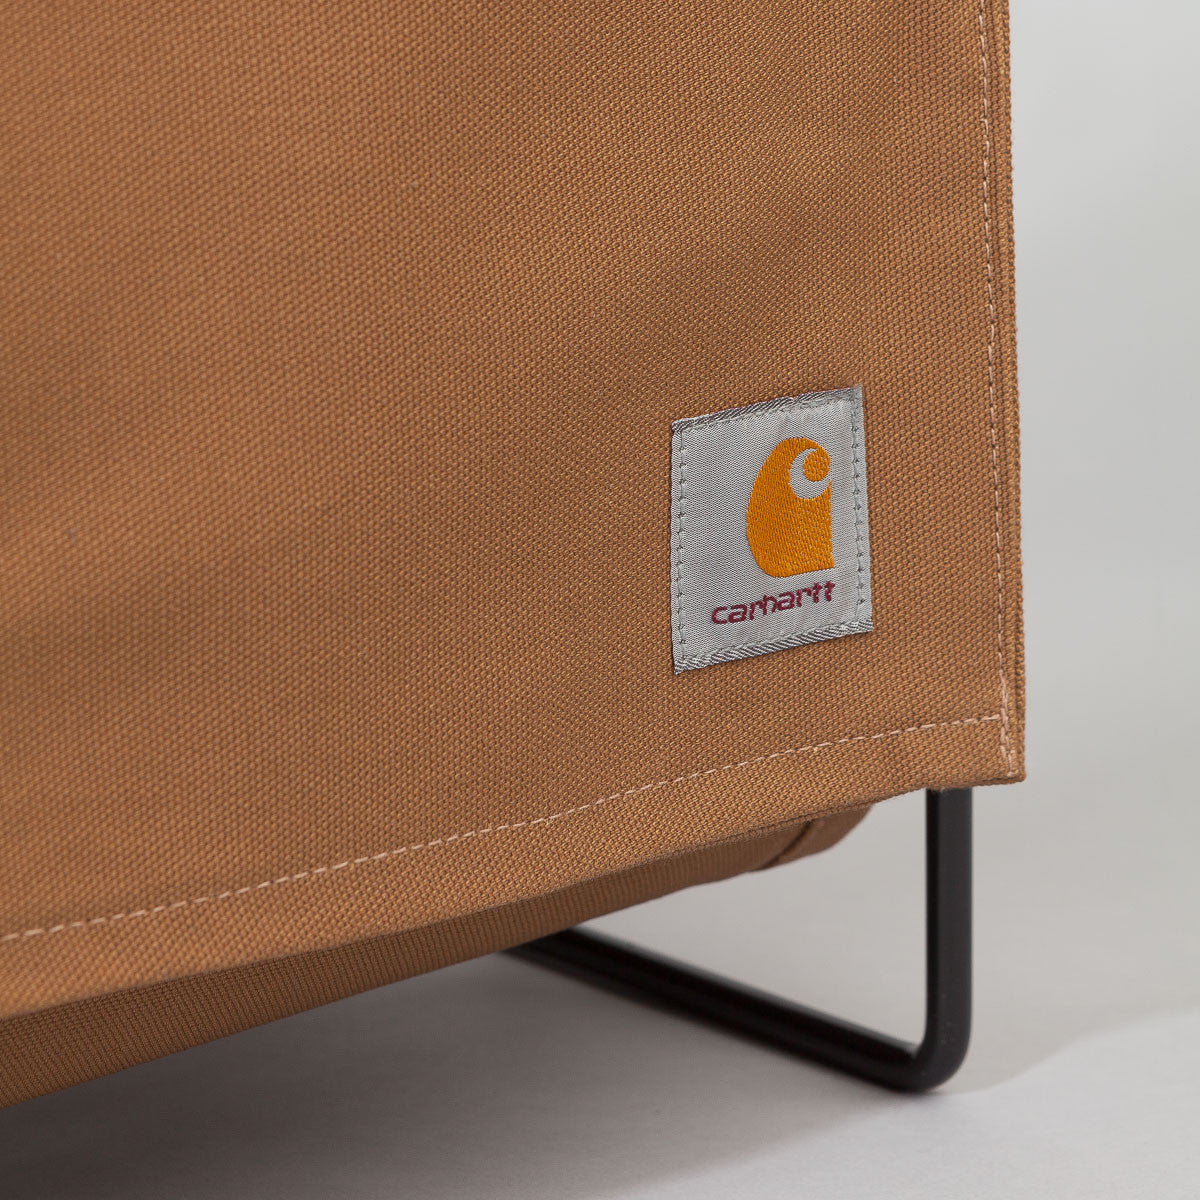 Carhartt Canvas Metal Frame Magazine Stand - Hamilton Brown